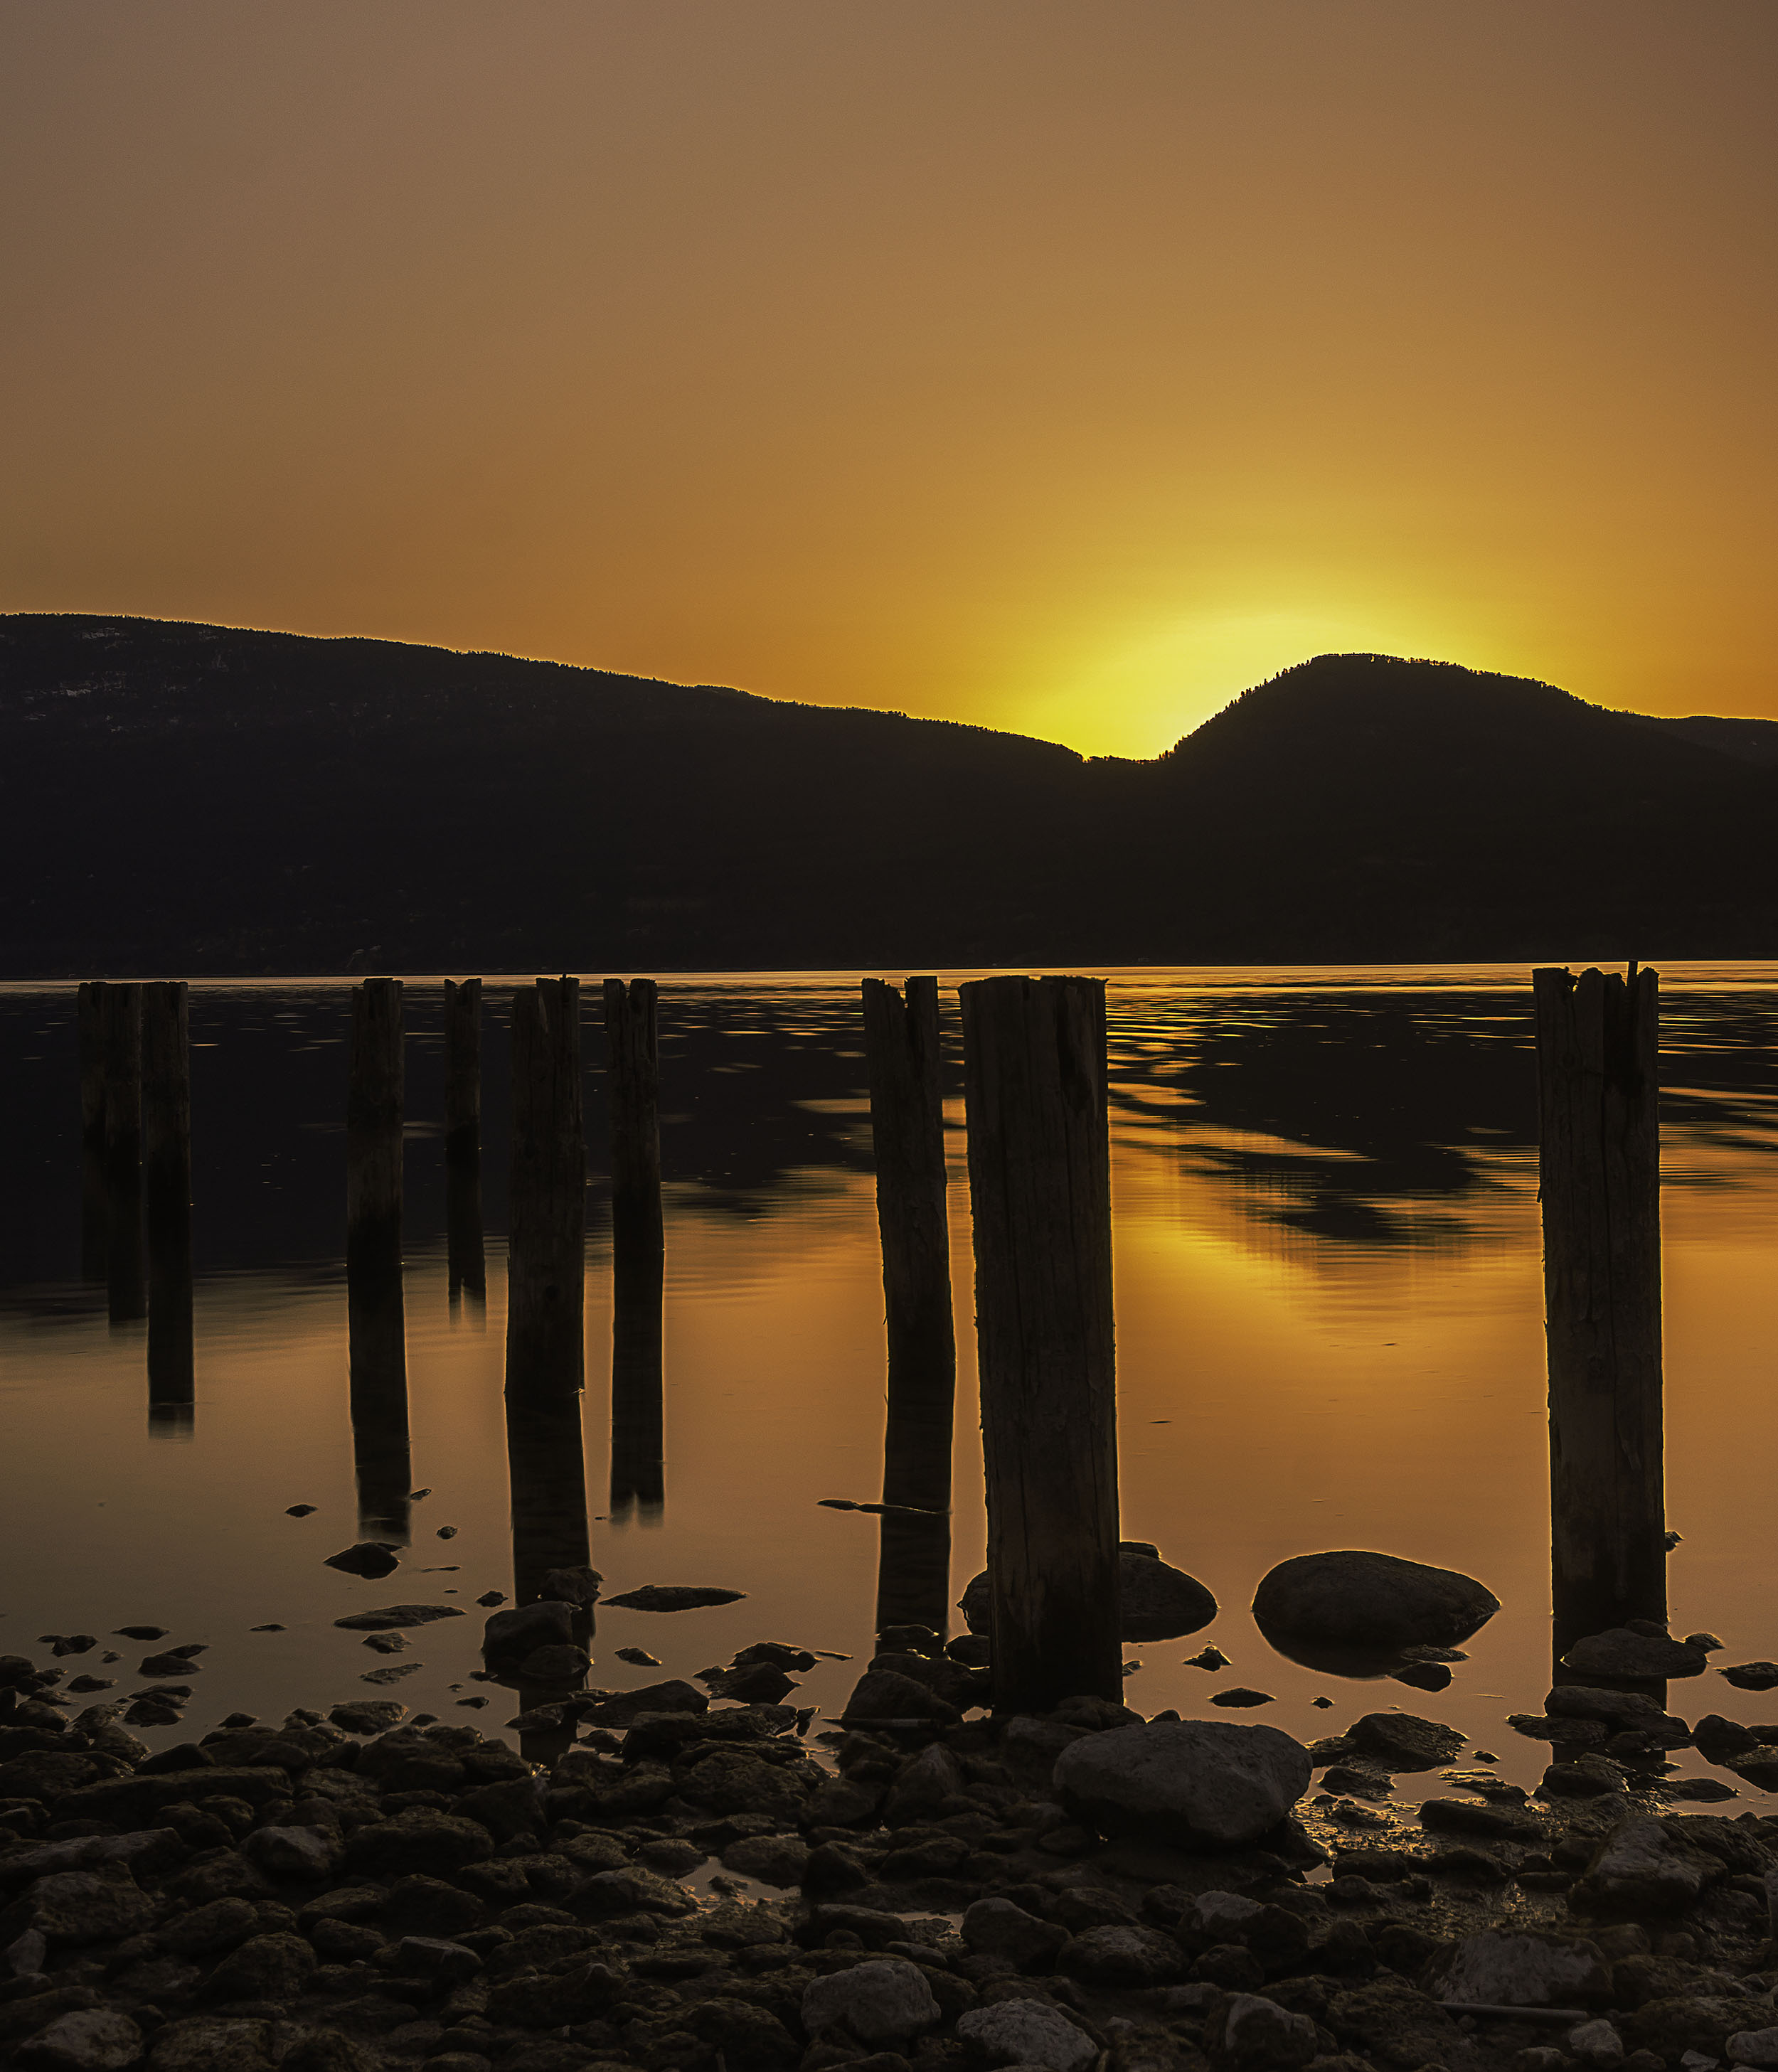 Sunset over Okanagan Lake, BC, Canada